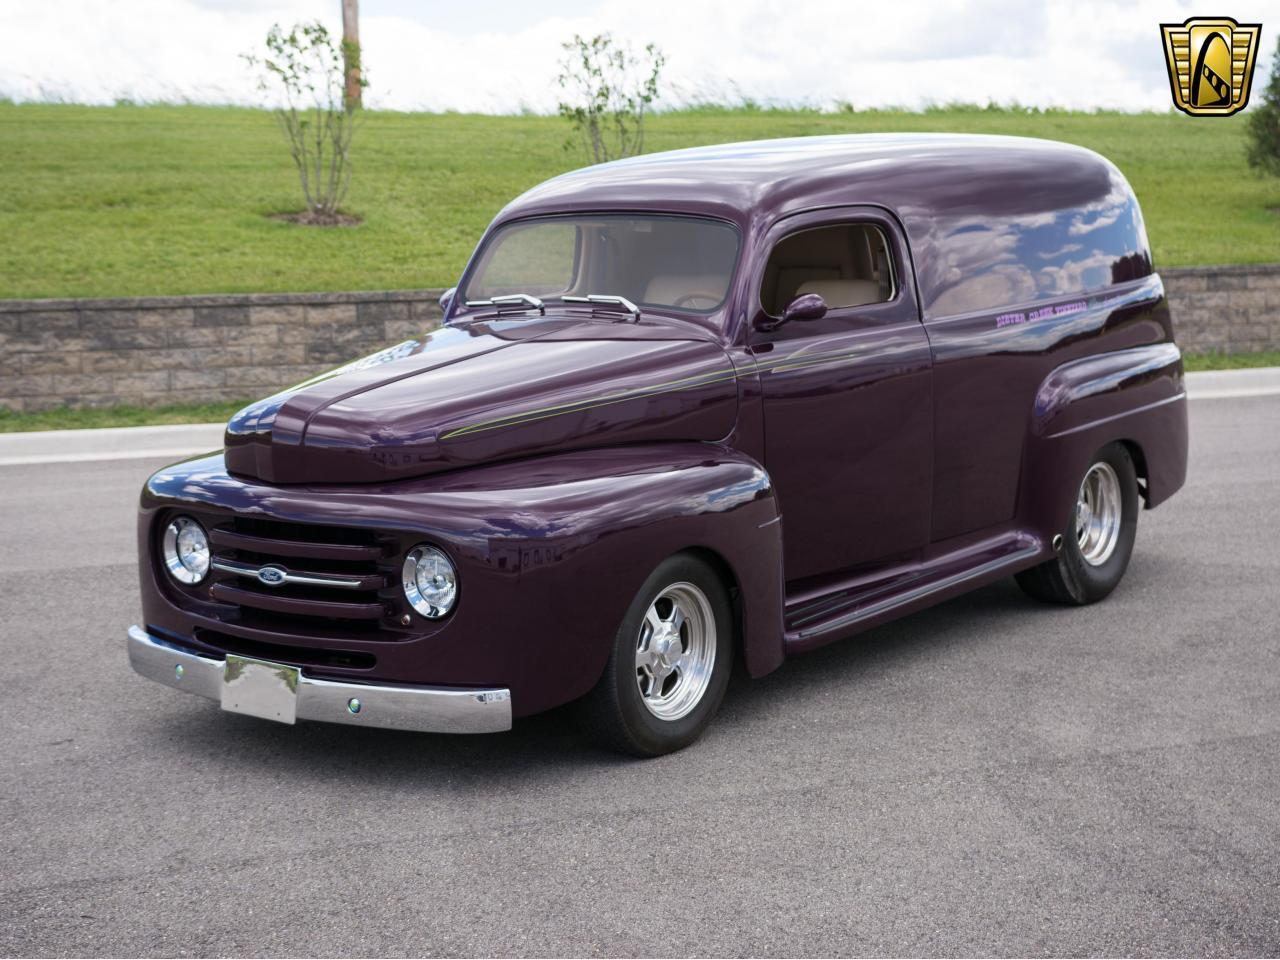 Large Picture of Classic 1948 Ford F100 located in Wisconsin - $37,995.00 Offered by Gateway Classic Cars - Milwaukee - LHK0